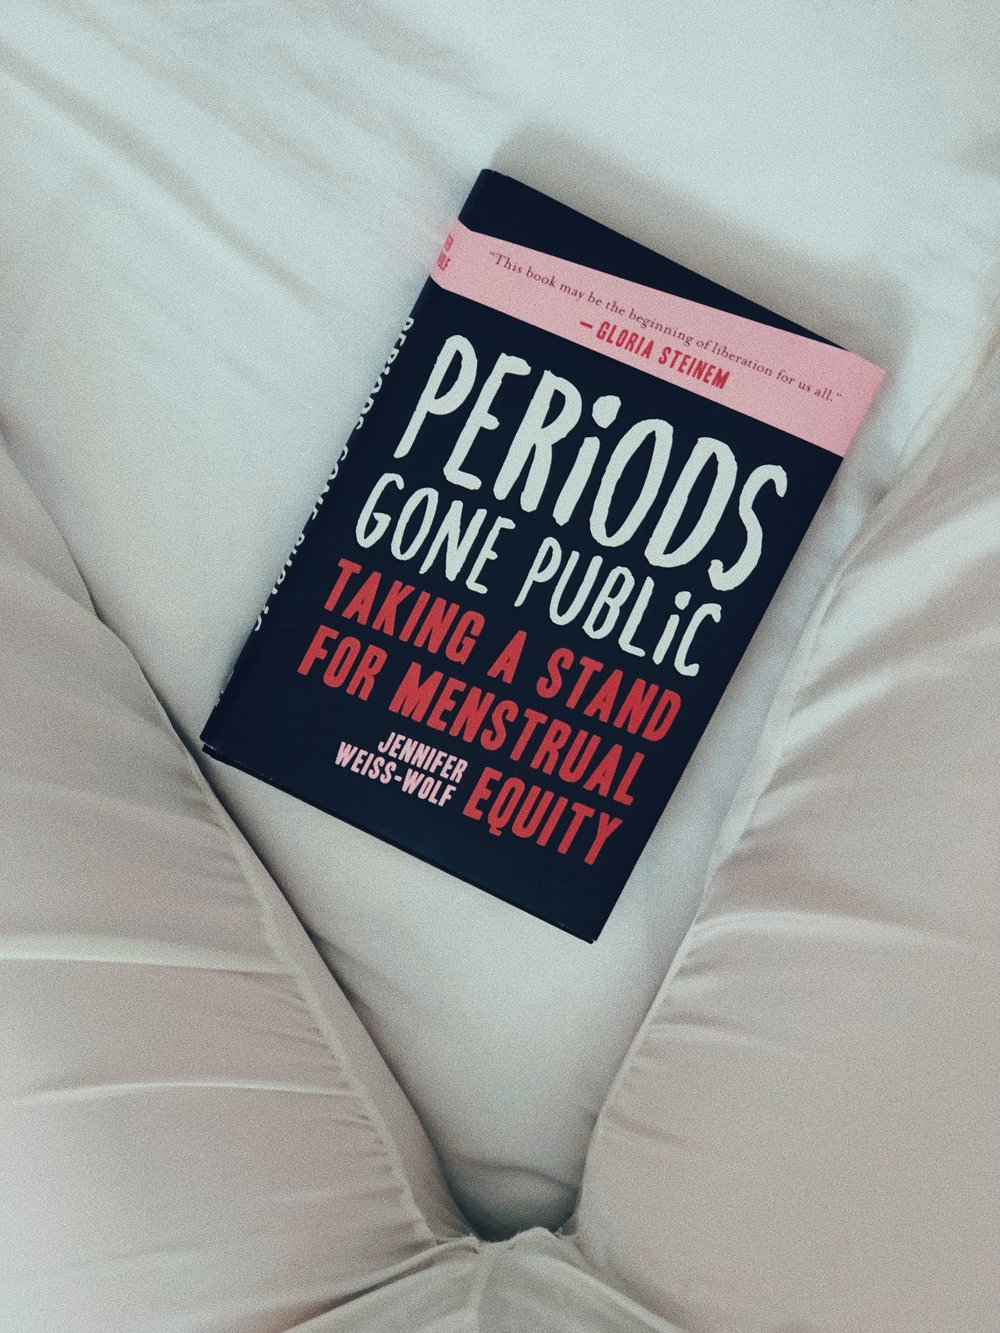 I JUST STARTED READING THIS AND I HIGHLY RECOMMEND IT. MENSTRUAL ACTIVIST JENNIFER WEISS-WOLF'S BOOK   PERIODS GONE PUBLIC   EXPLORES MENSTRUAL EQUITY AND STIGMA, THE TAMPON TAX AND WOMEN'S RIGHTS AND HEALTH POLICY IN A POWERFUL AND COOL WAY. -T